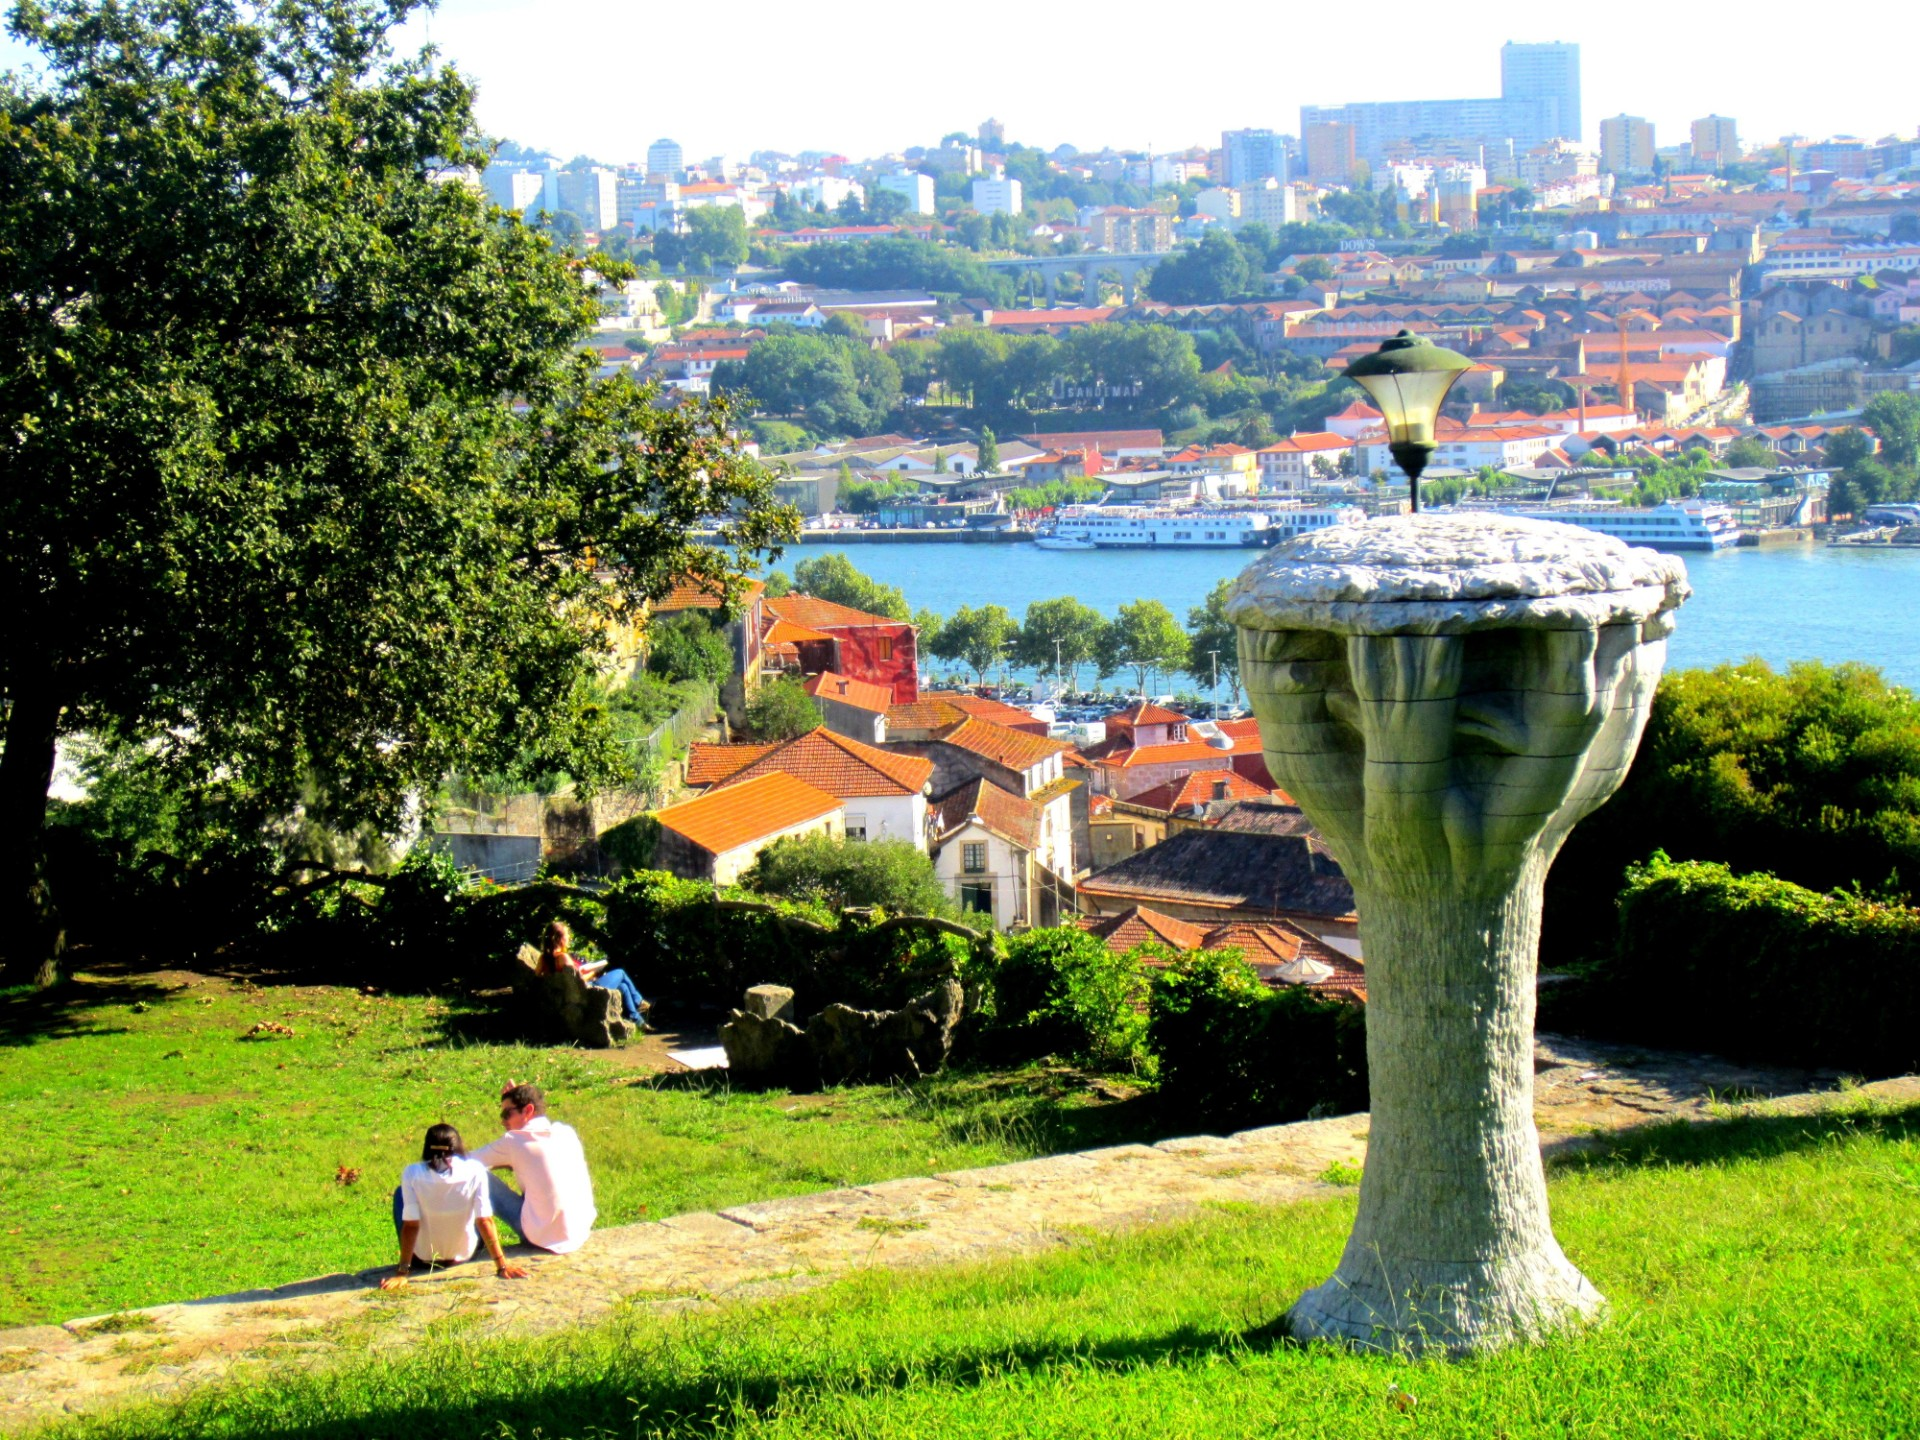 What to visit in Portugal: 10 Secret Gardens in Porto - Jardim das Virtudes what to visit in portugal What to visit in Portugal: 10 Secret Gardens in Porto img14 1